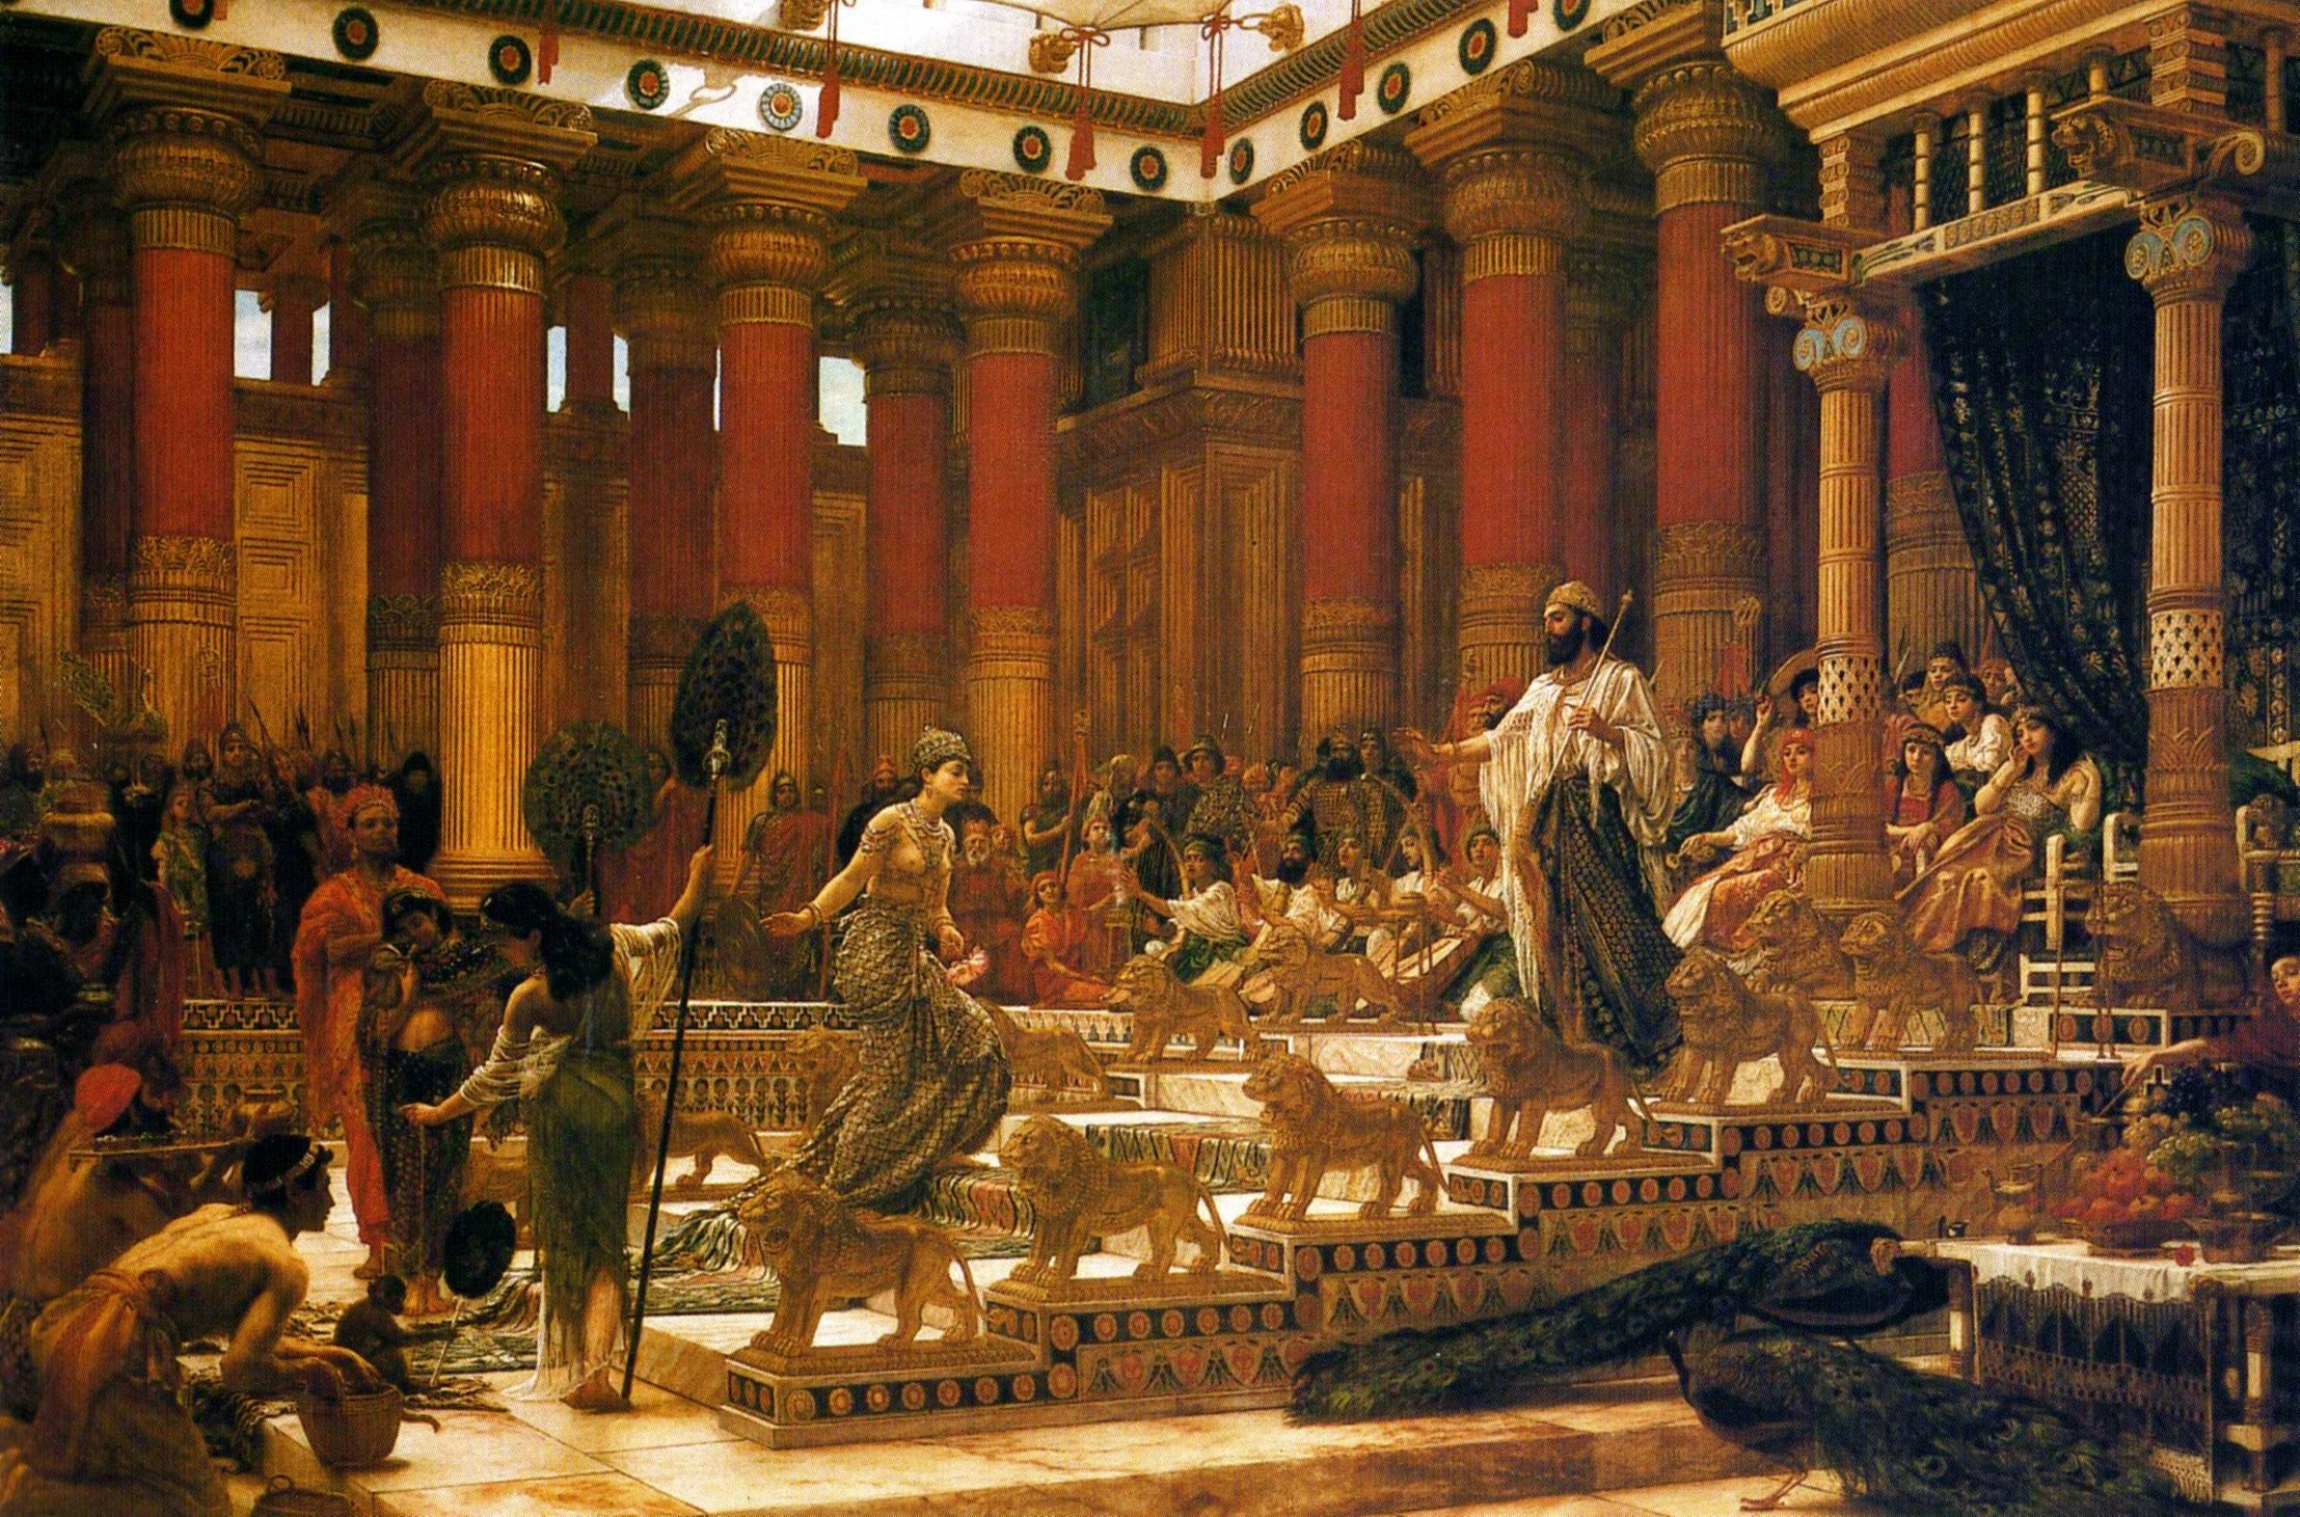 How Many Miles To Babylon: Cultural Context